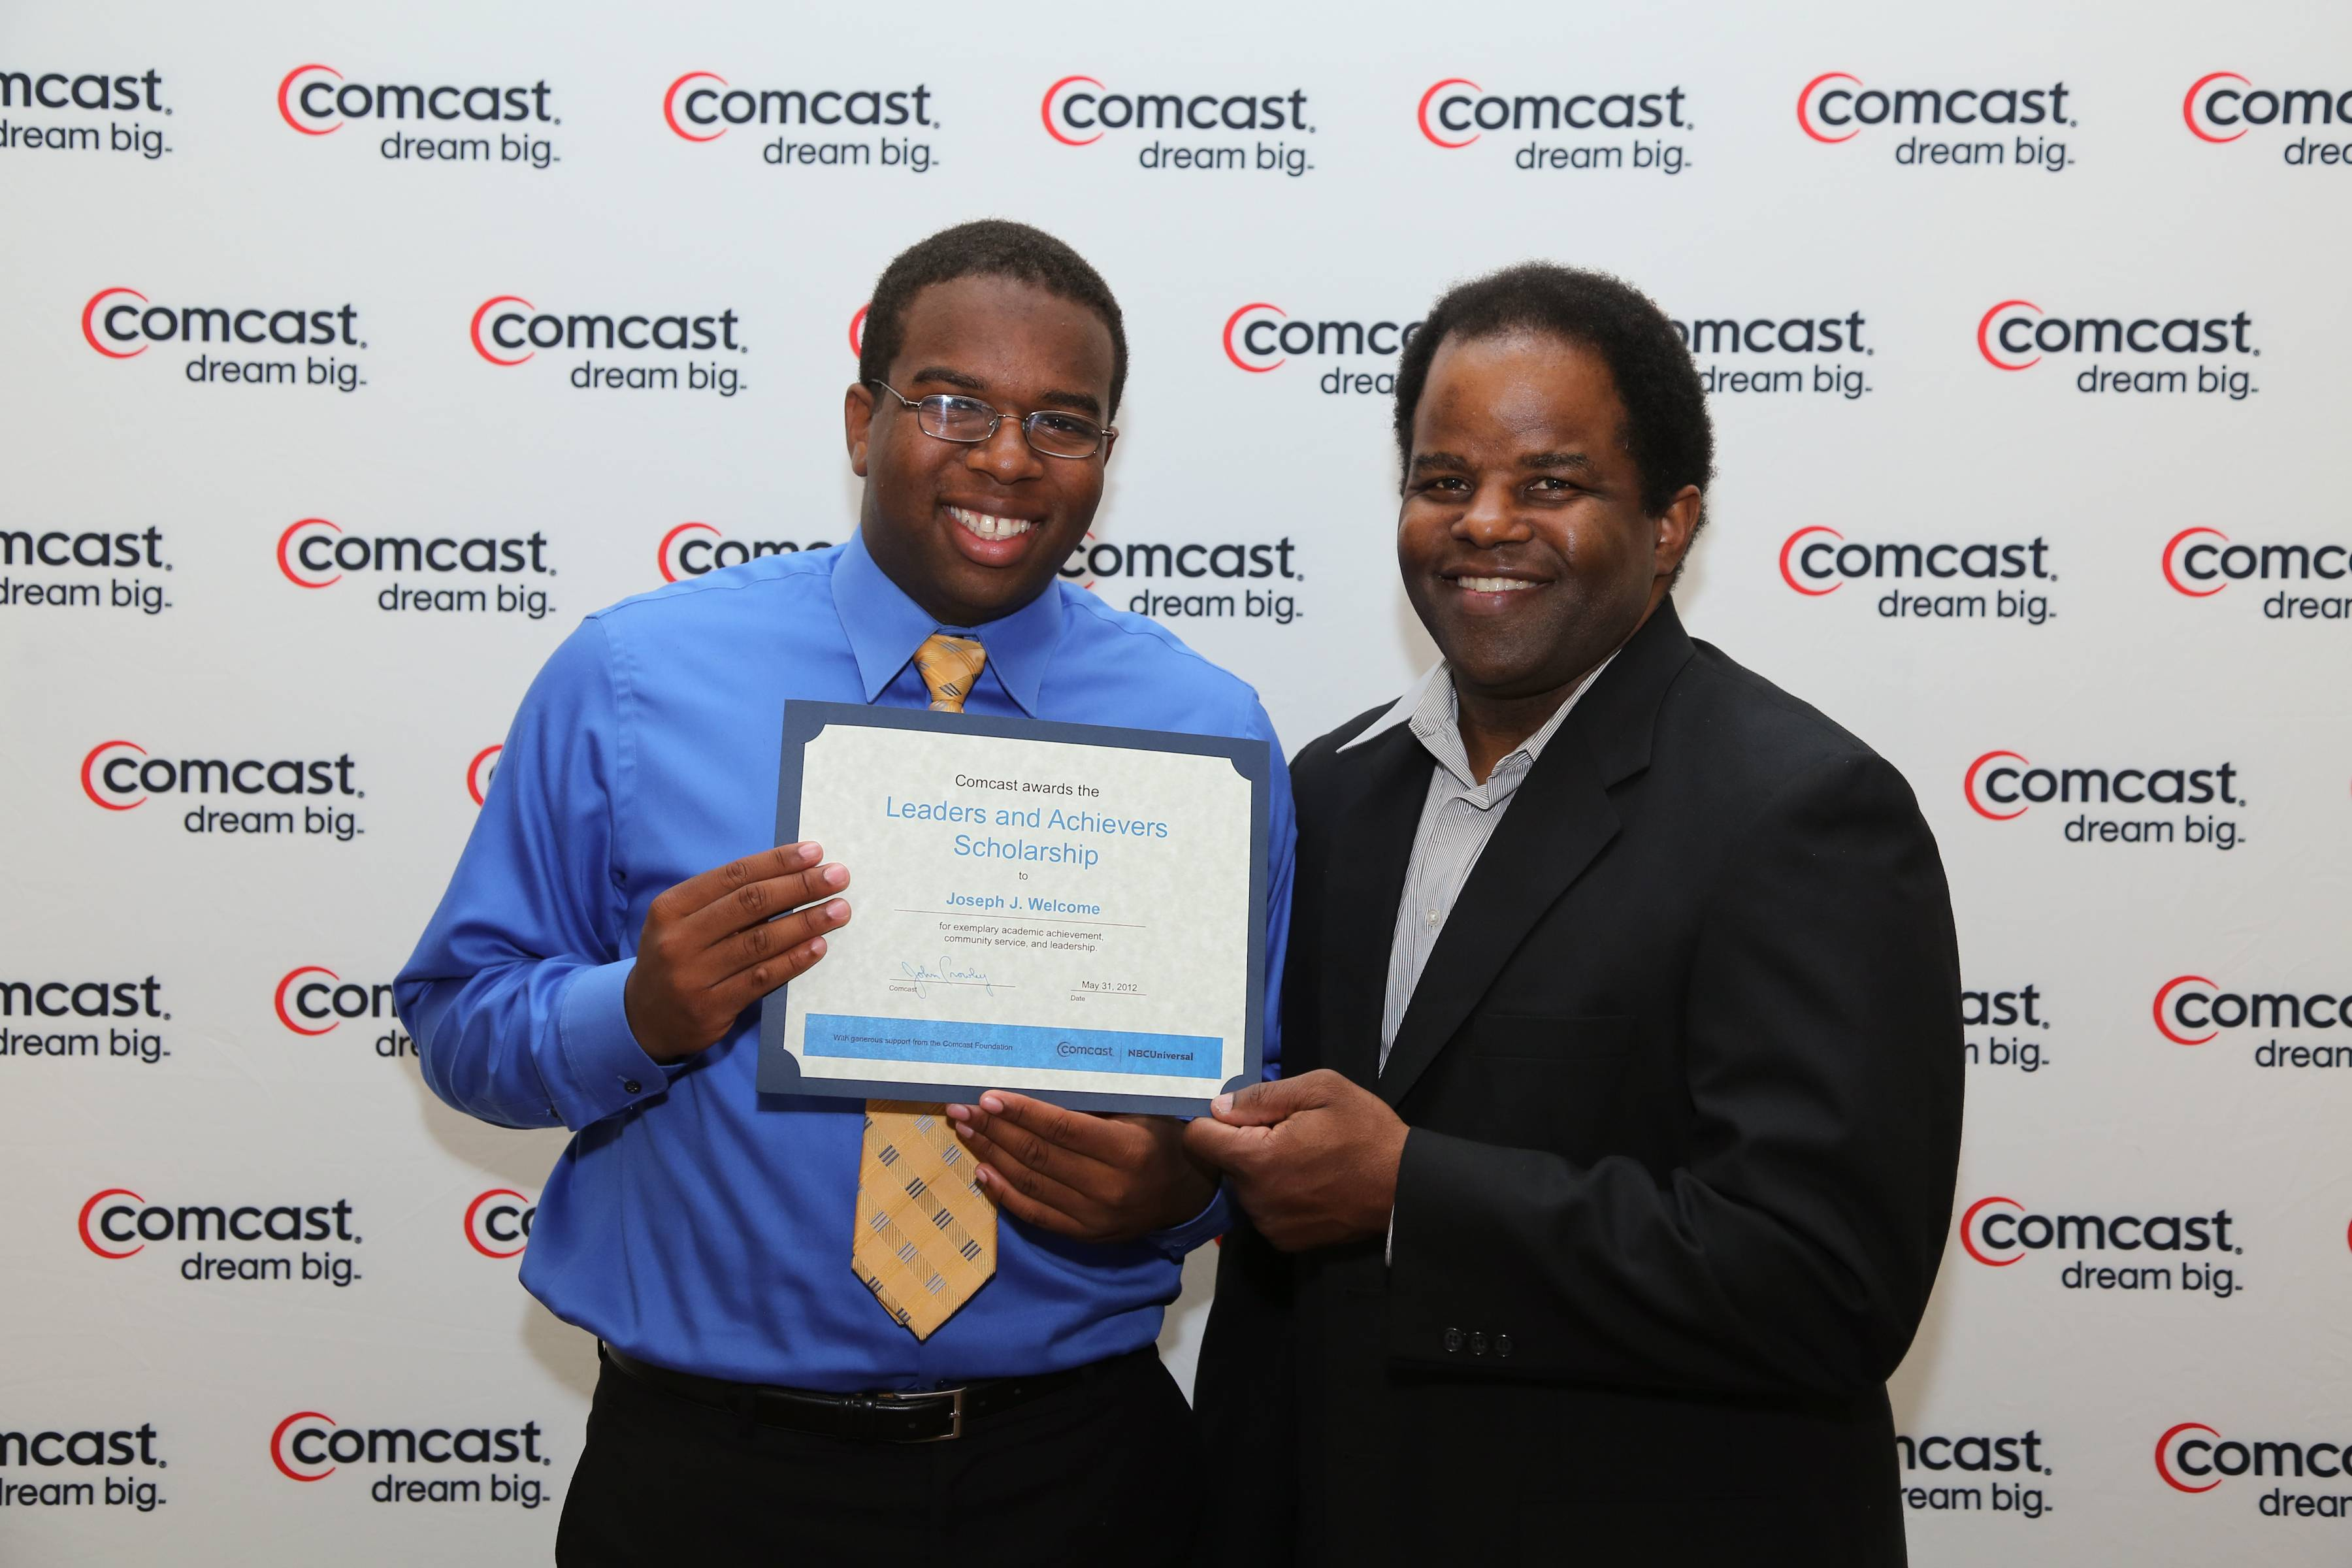 Joseph Welcome accepts a $1,000 Comcast Leaders and Achievers Scholarship